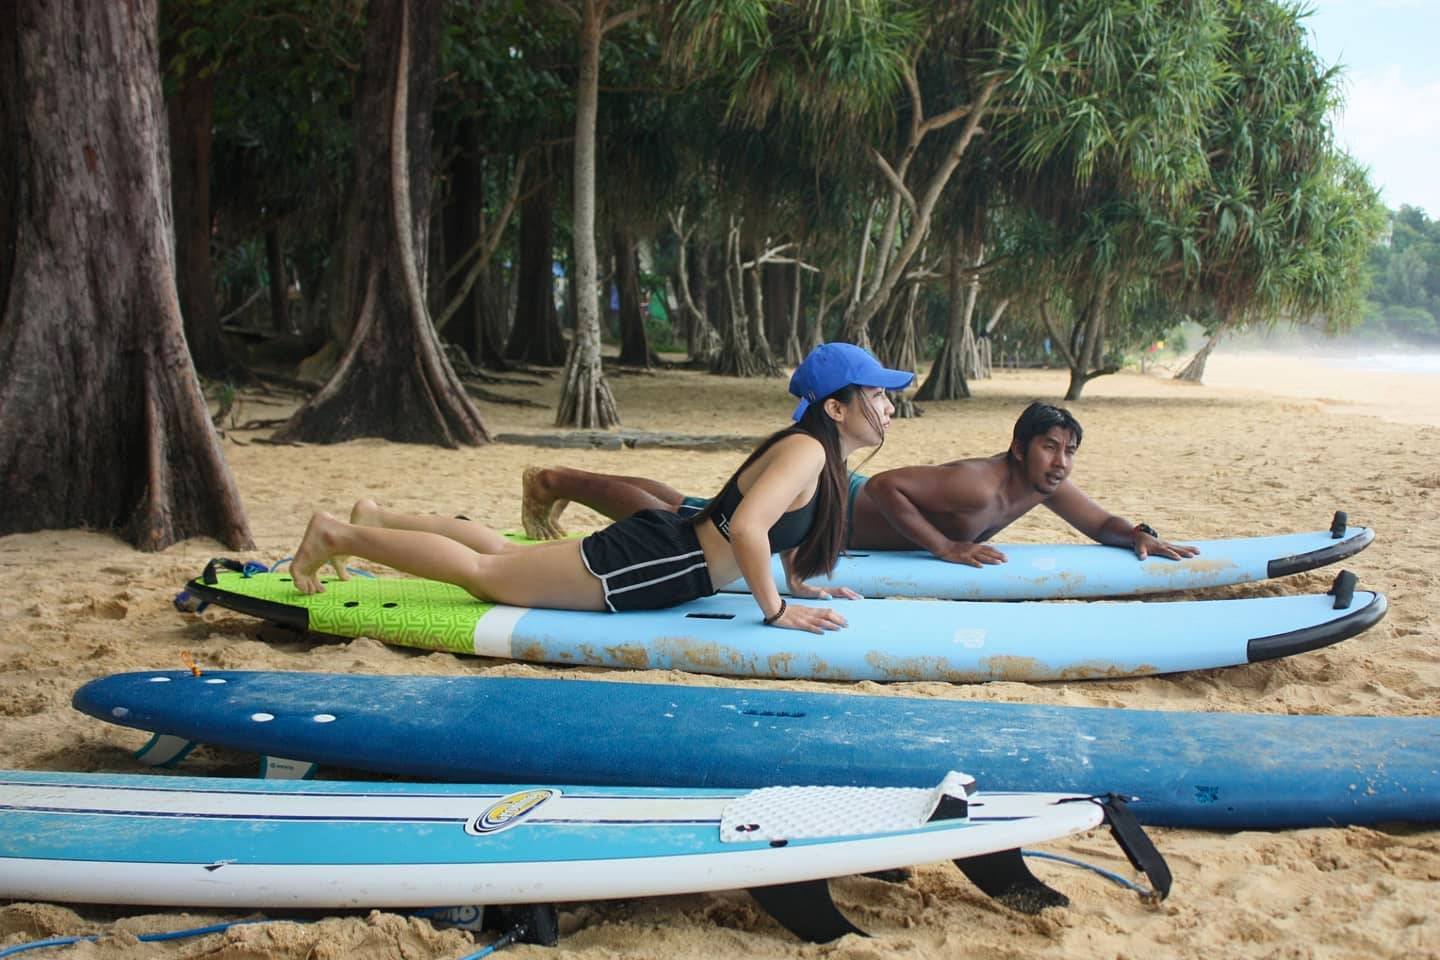 Ohm's Surfboard Rental in Nai Thon Beach op Phuket